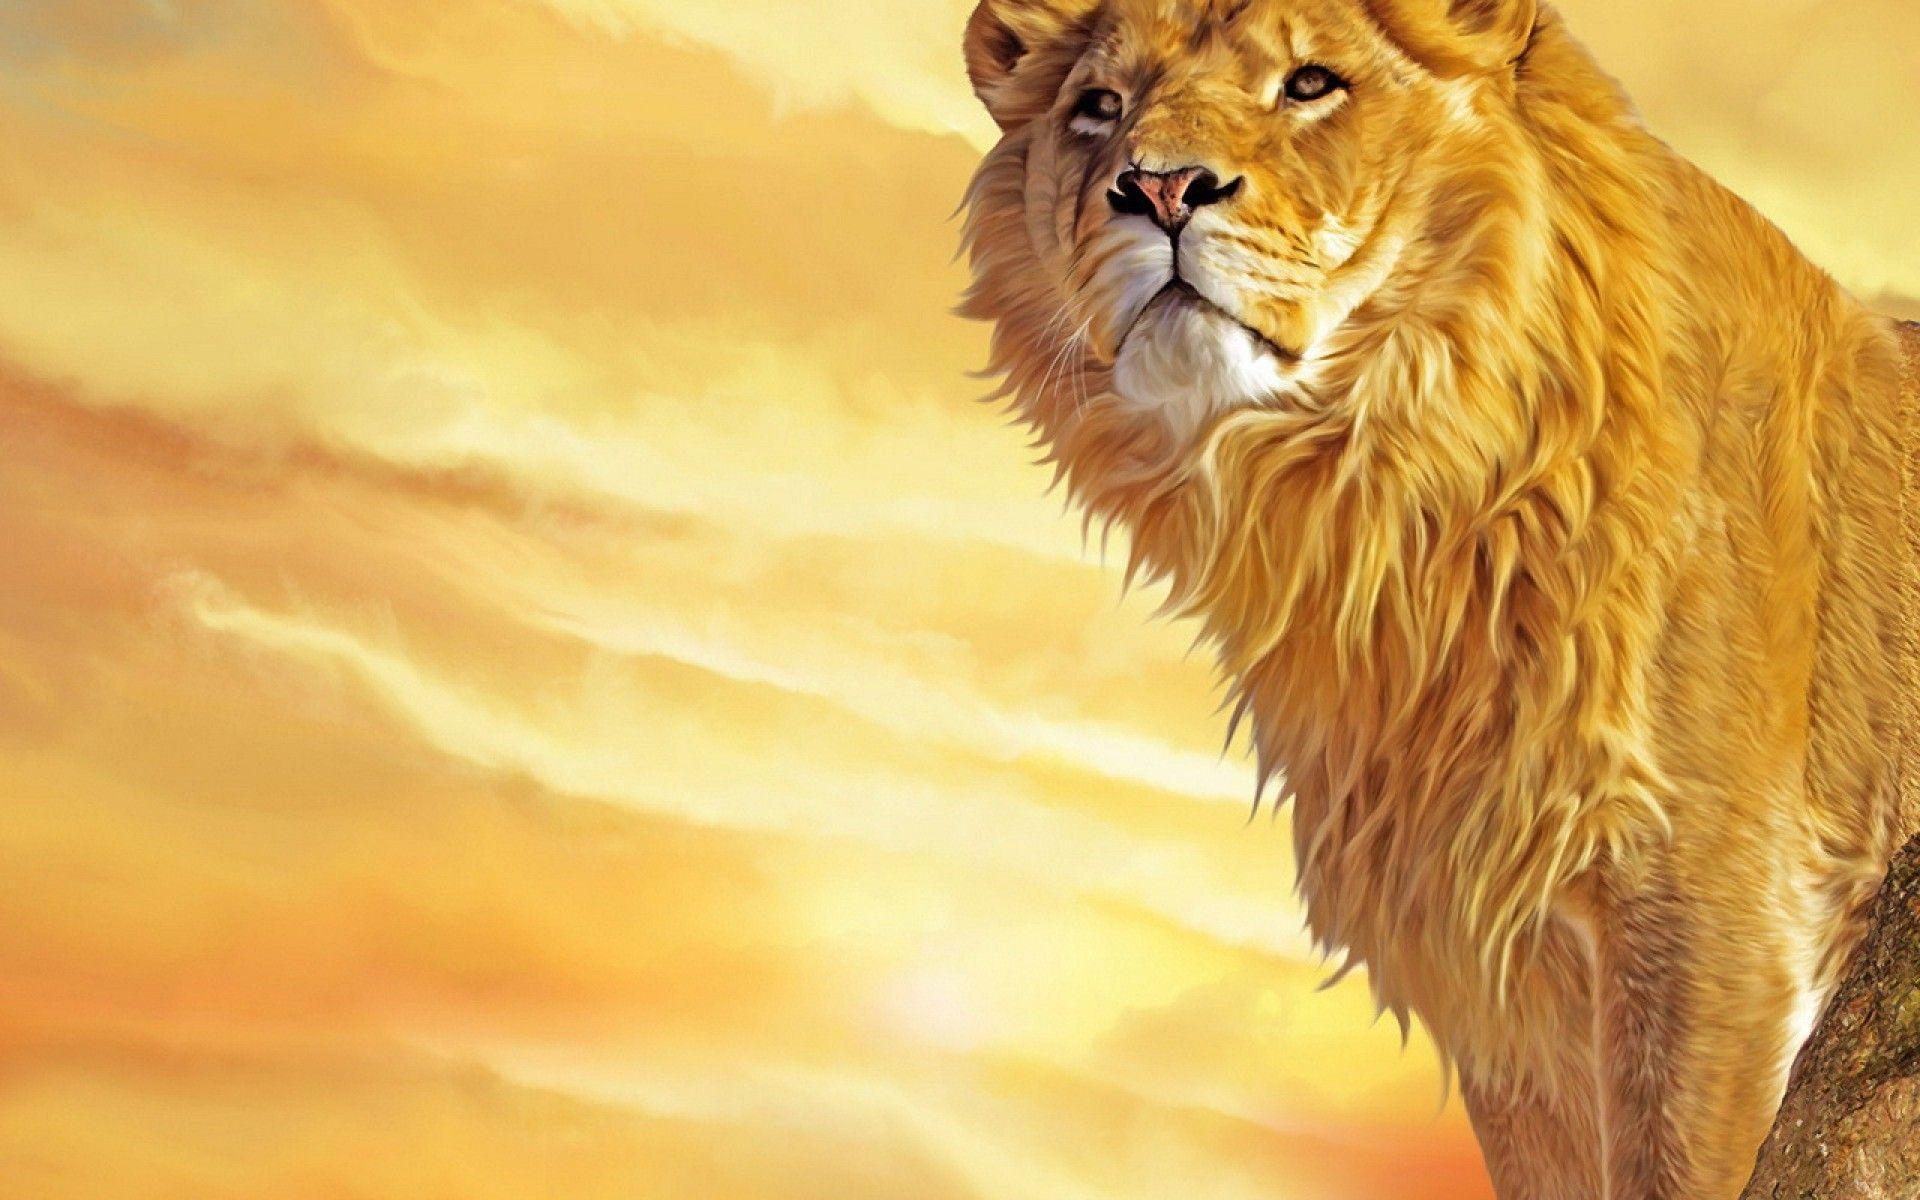 Mac Lion Wallpapers - Full HD wallpaper search - page 8